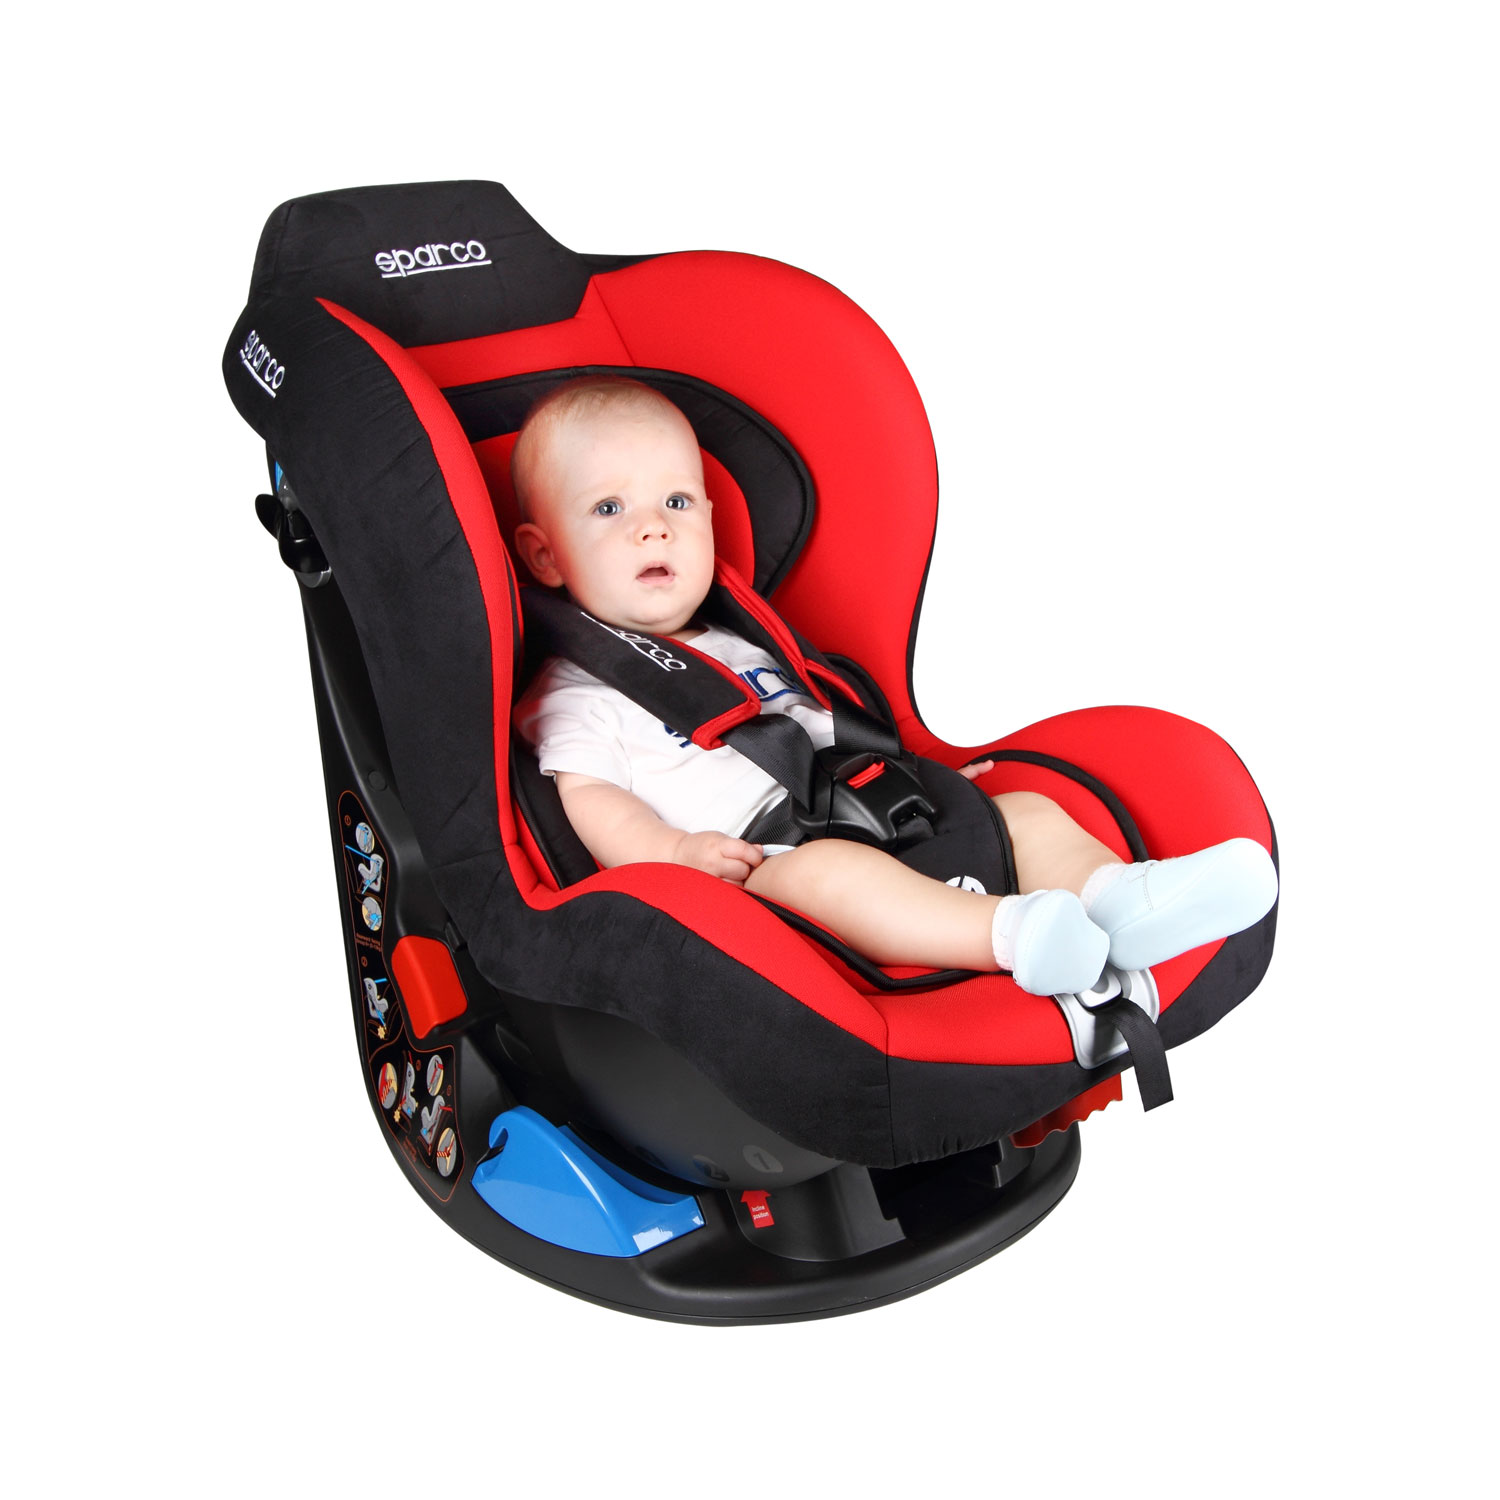 sparco italy f5000k grey child seat 9 18 kg grey car parts child seats shop by team. Black Bedroom Furniture Sets. Home Design Ideas